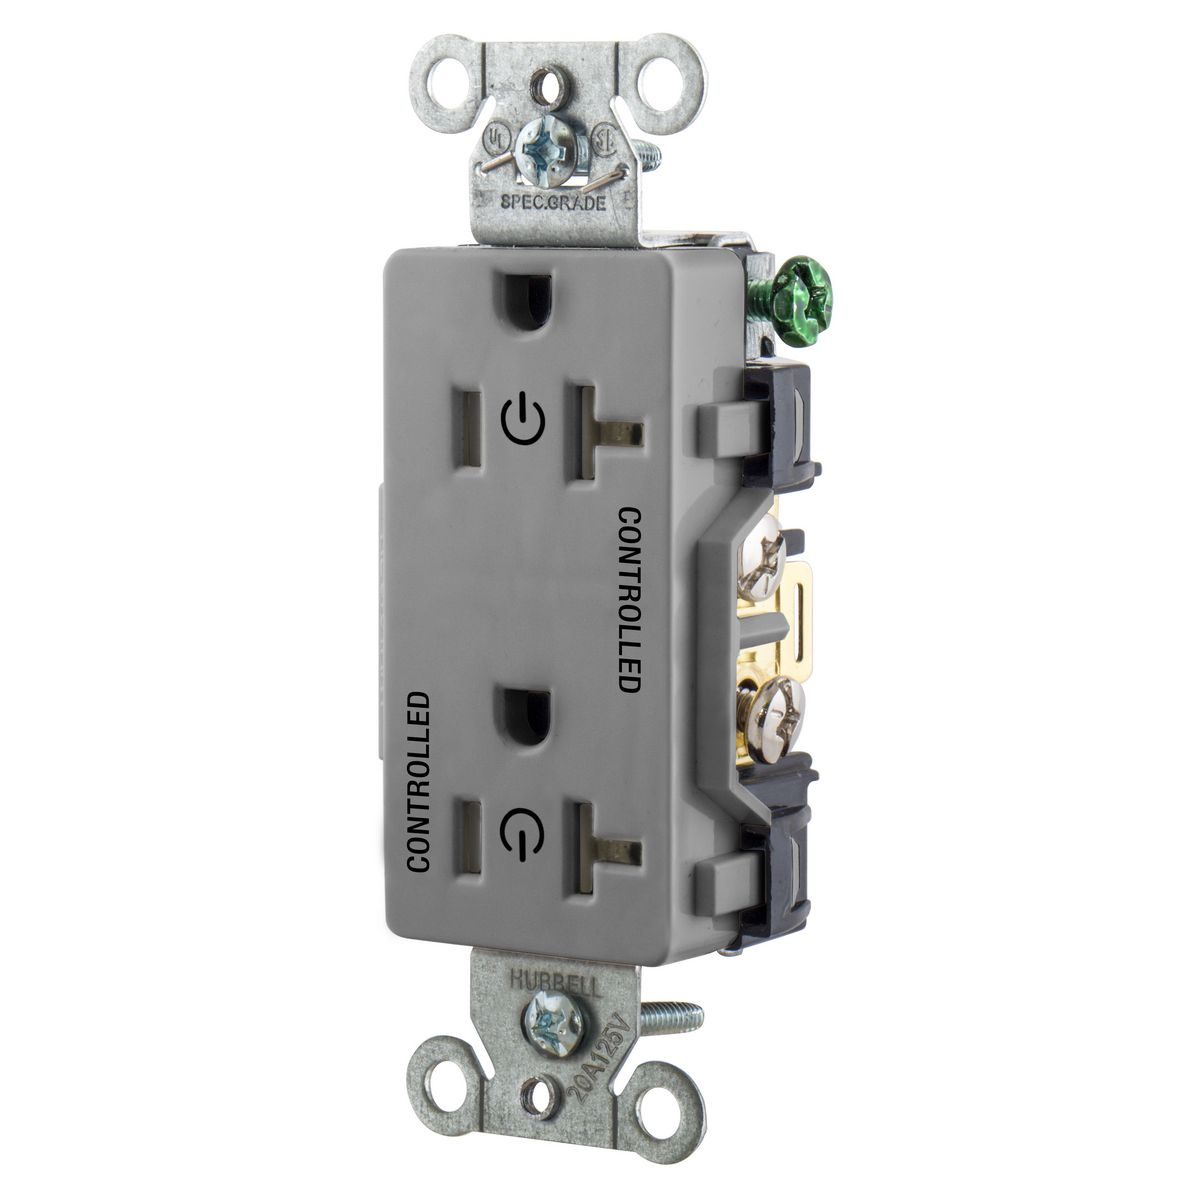 2/2 CONTROLLED 20A 125V, B/S, DECO, GY